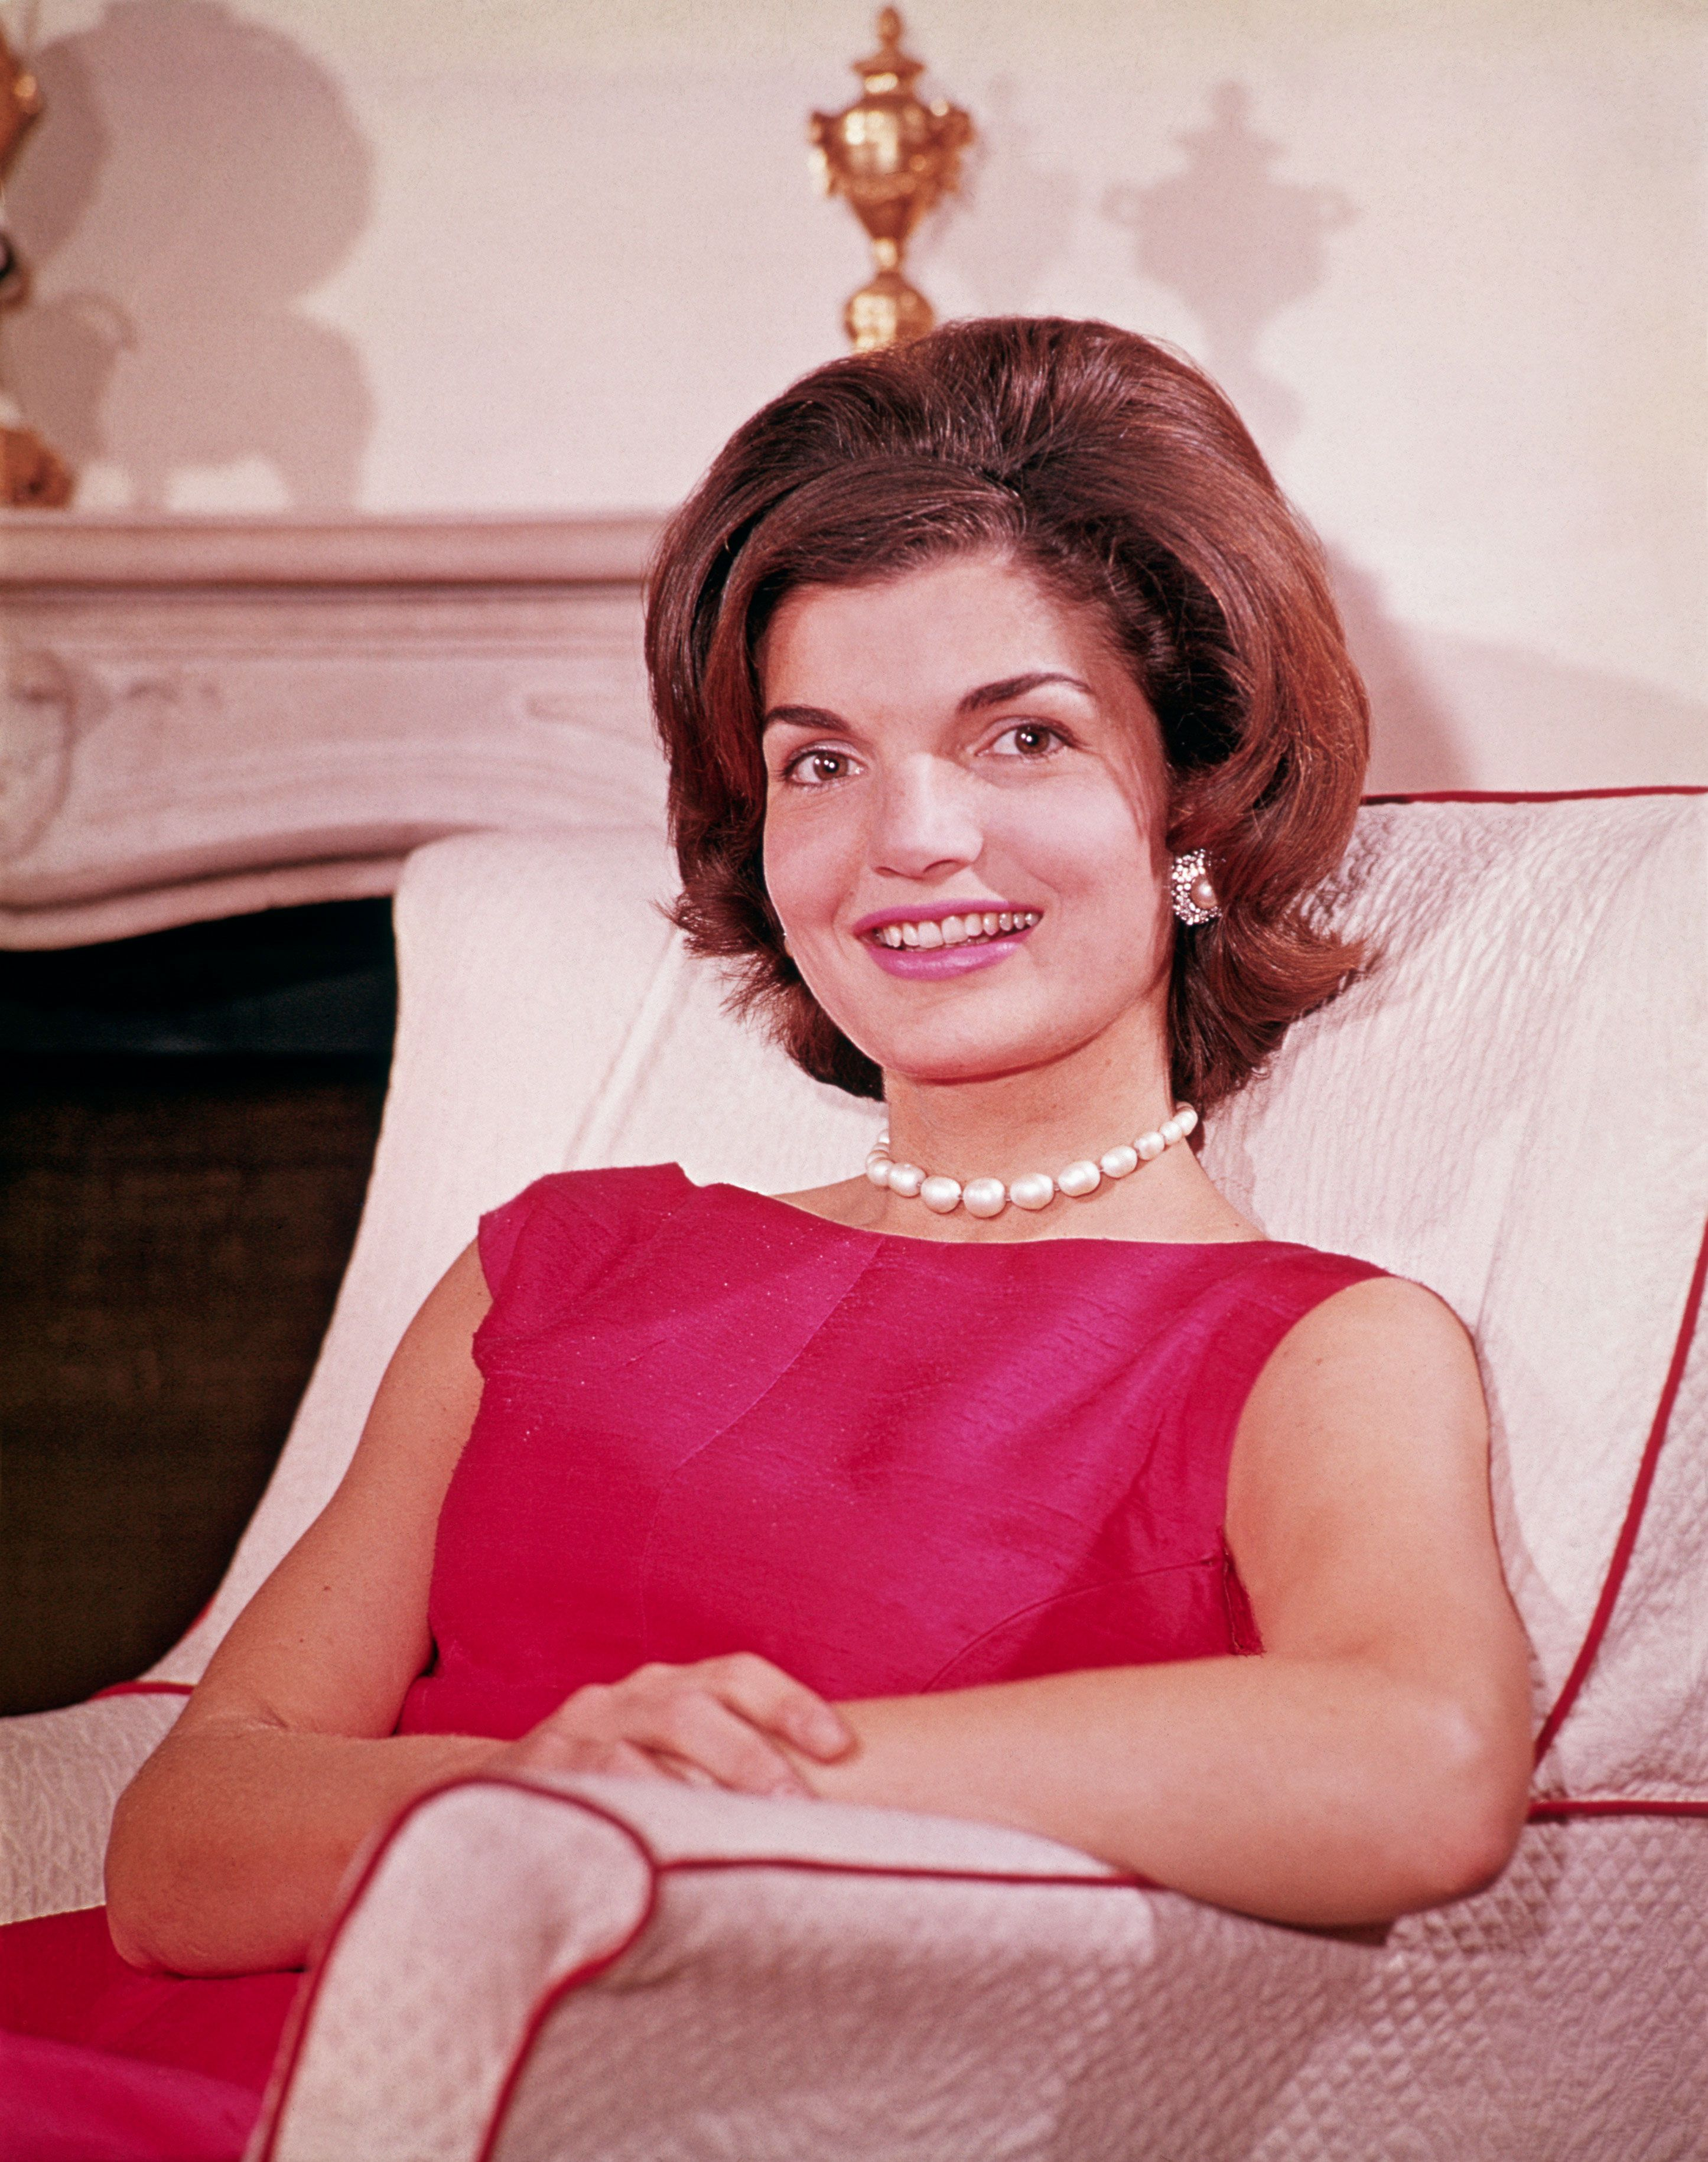 jacqueline kennedy old